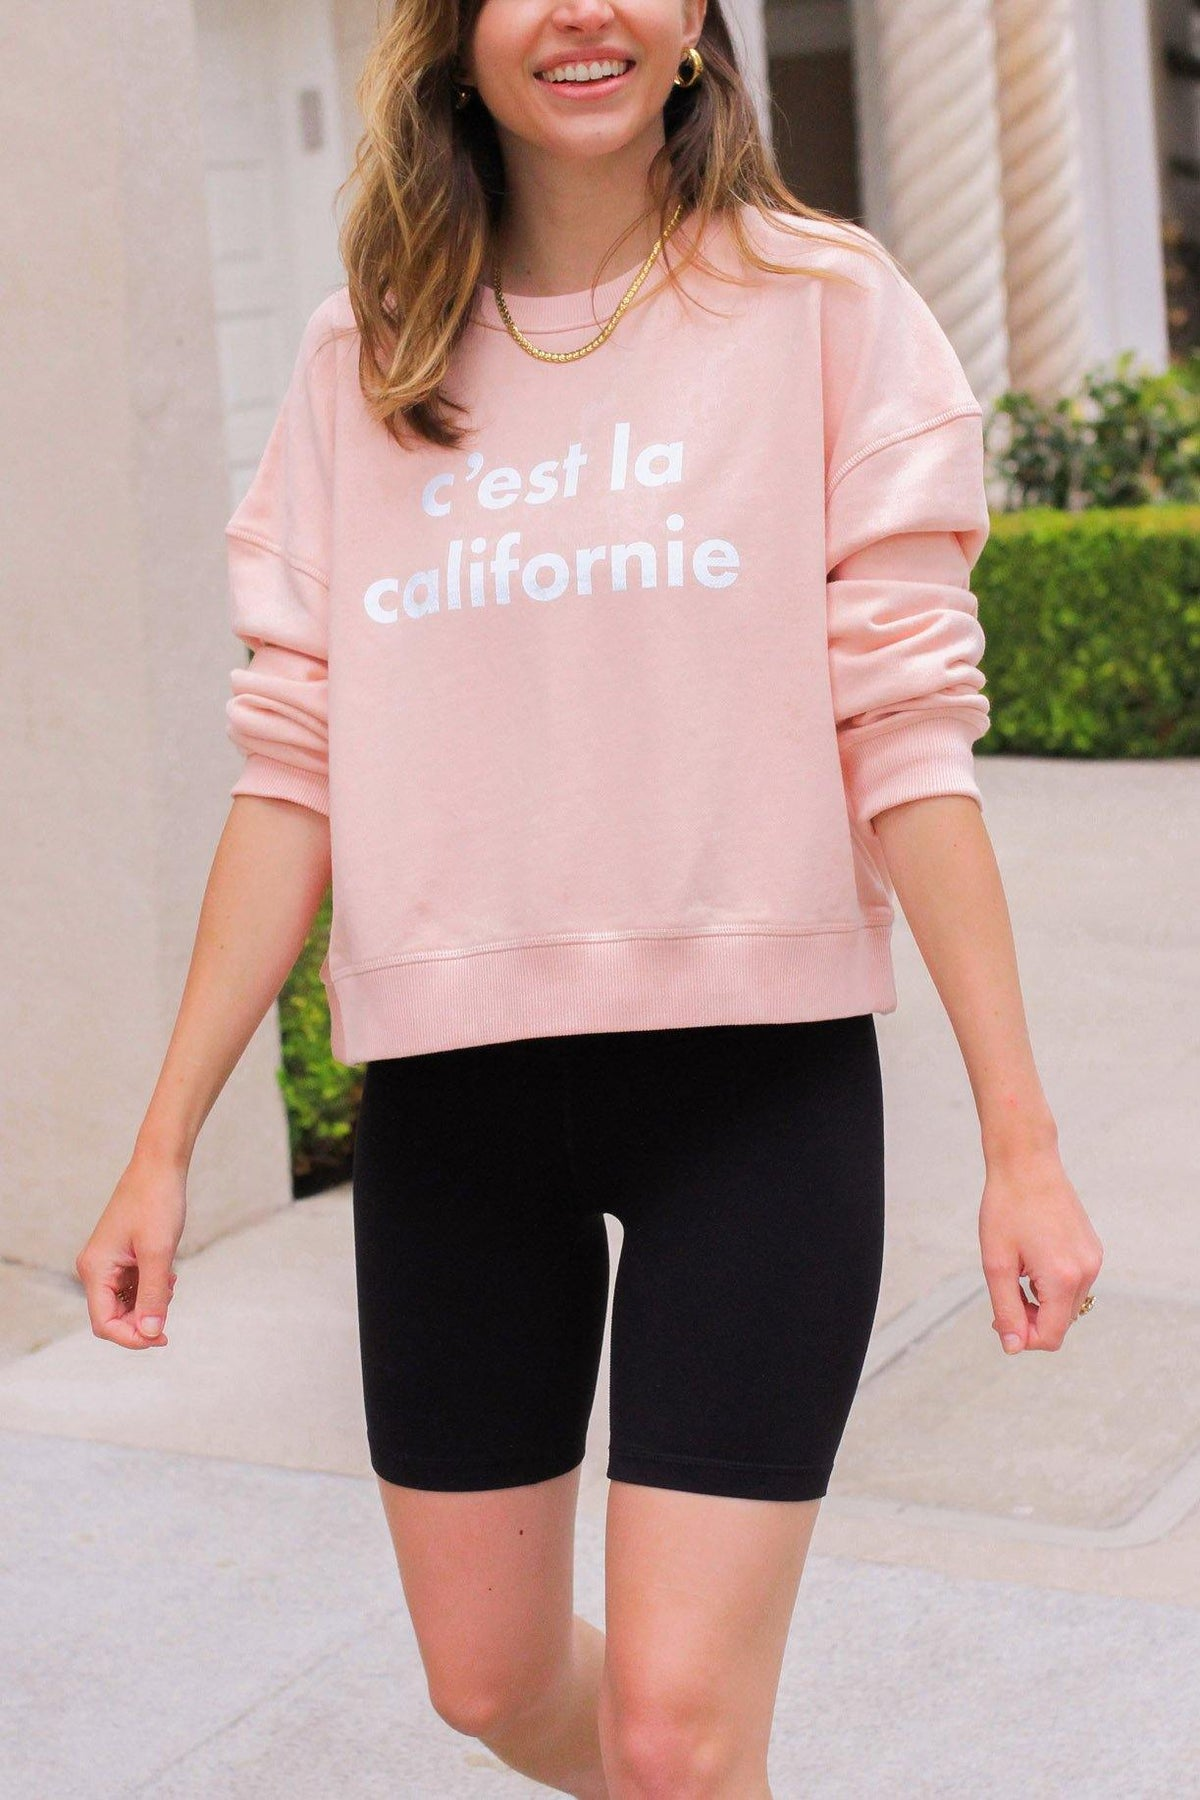 C'est la Californie pink sweatshirt from Sweet & Spark.